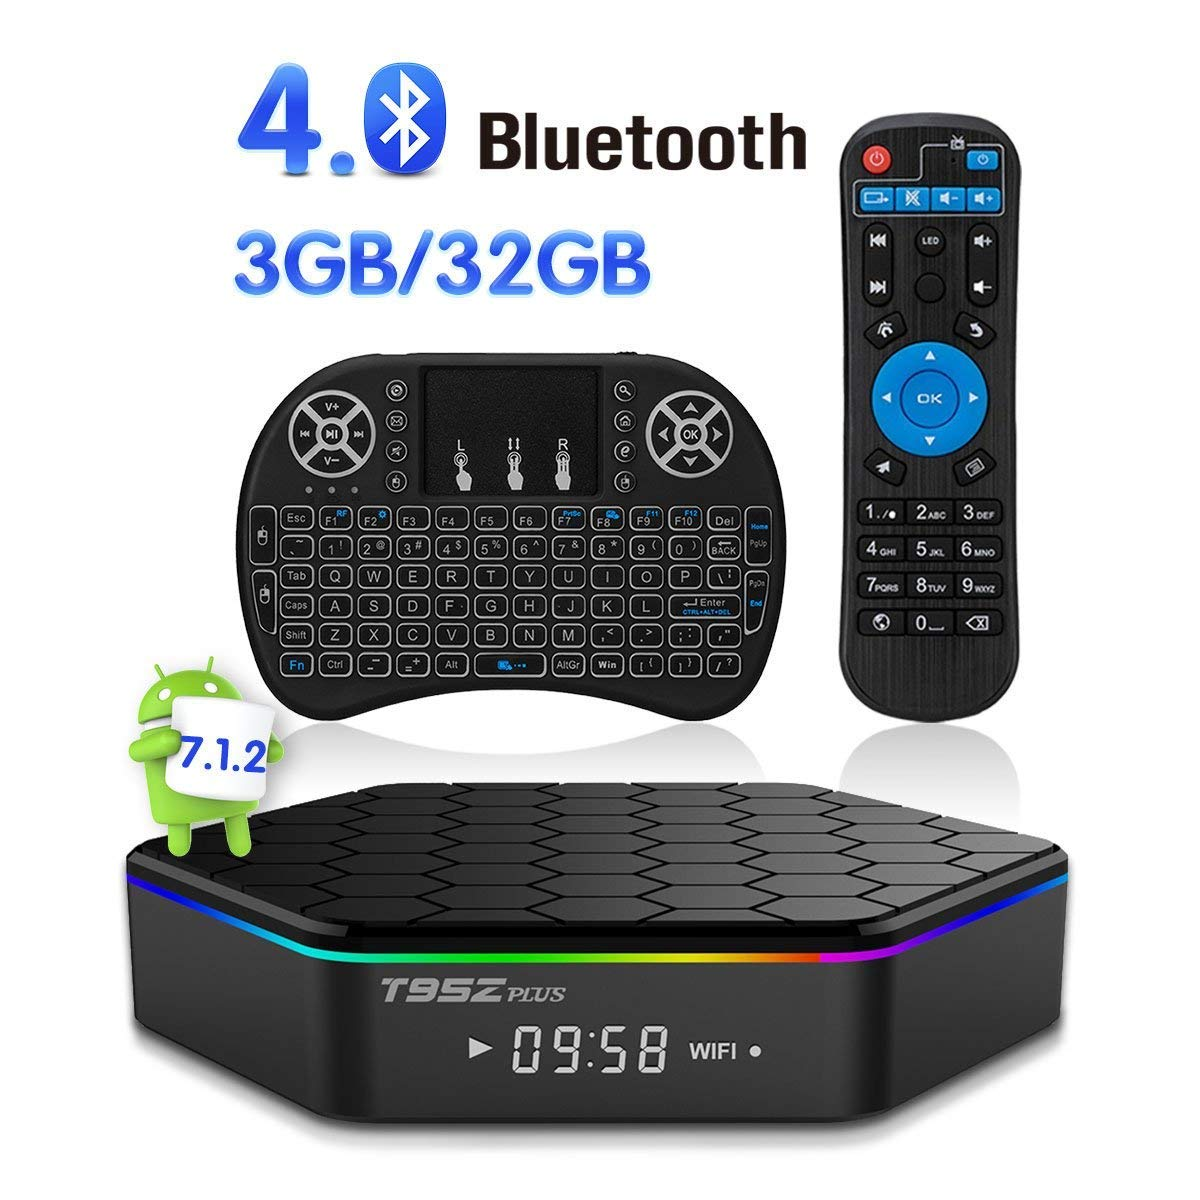 Android TV Box T95Z Plus Android 7.1.2 TV Box 3G+32G Amlogic S912 Octa-Core, 2.4/5.8G Dual-Band Wi-Fi/10-1000M LAN 64Bit BT4.0 H.265 UHD 4K Android Box with Mini Wireless Keyboard & Remote by Tech-Well